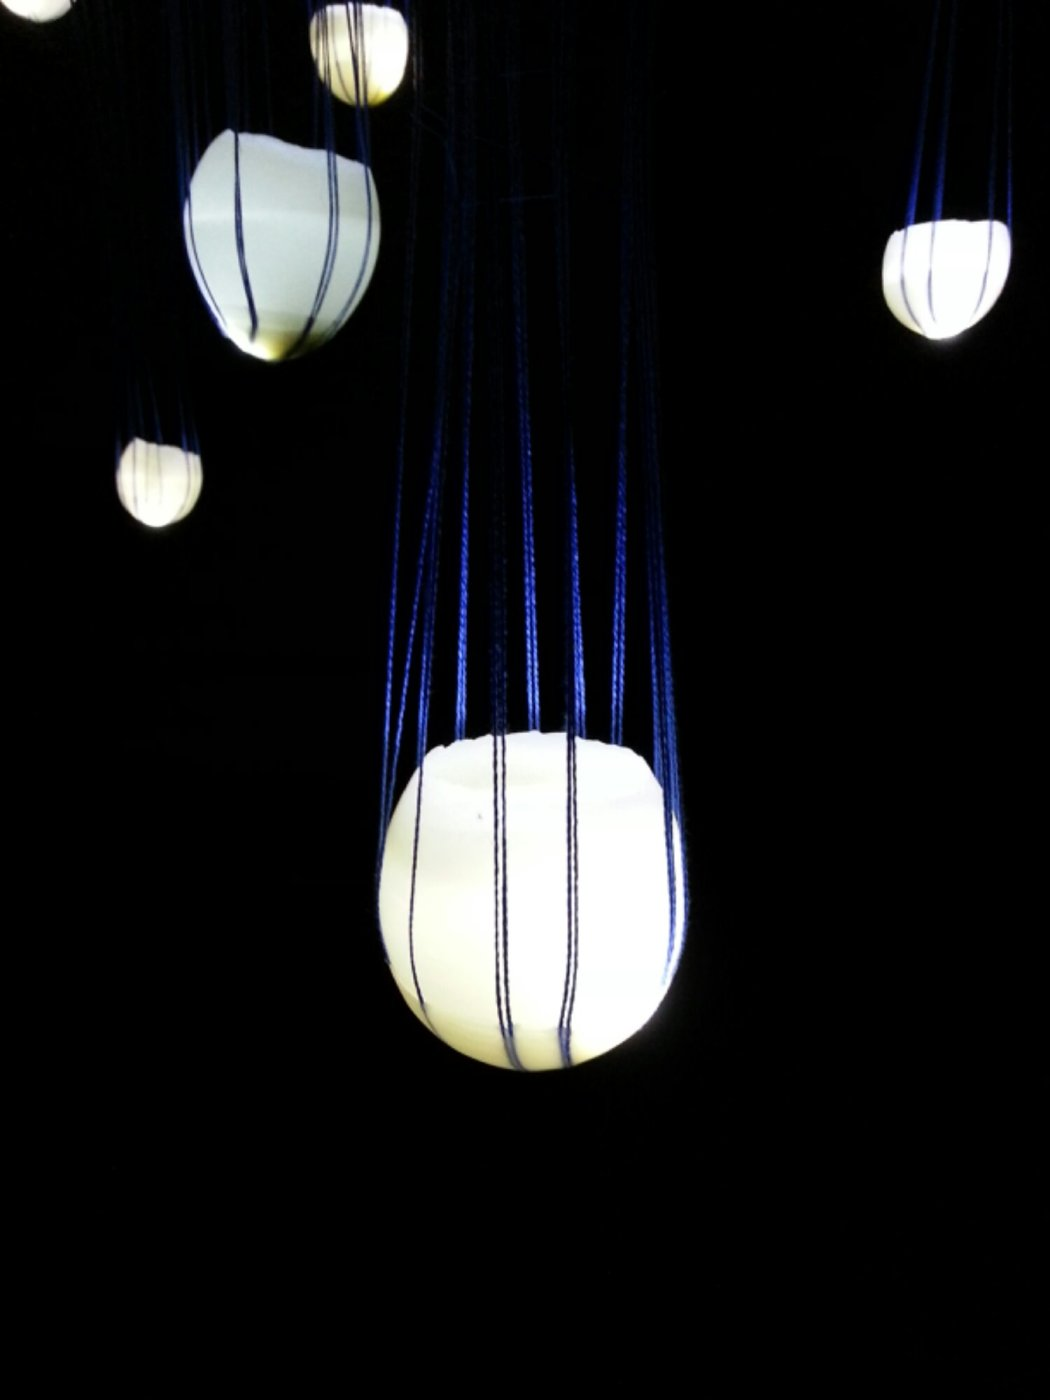 abbie r powers installation art made of silk and string, wax, light